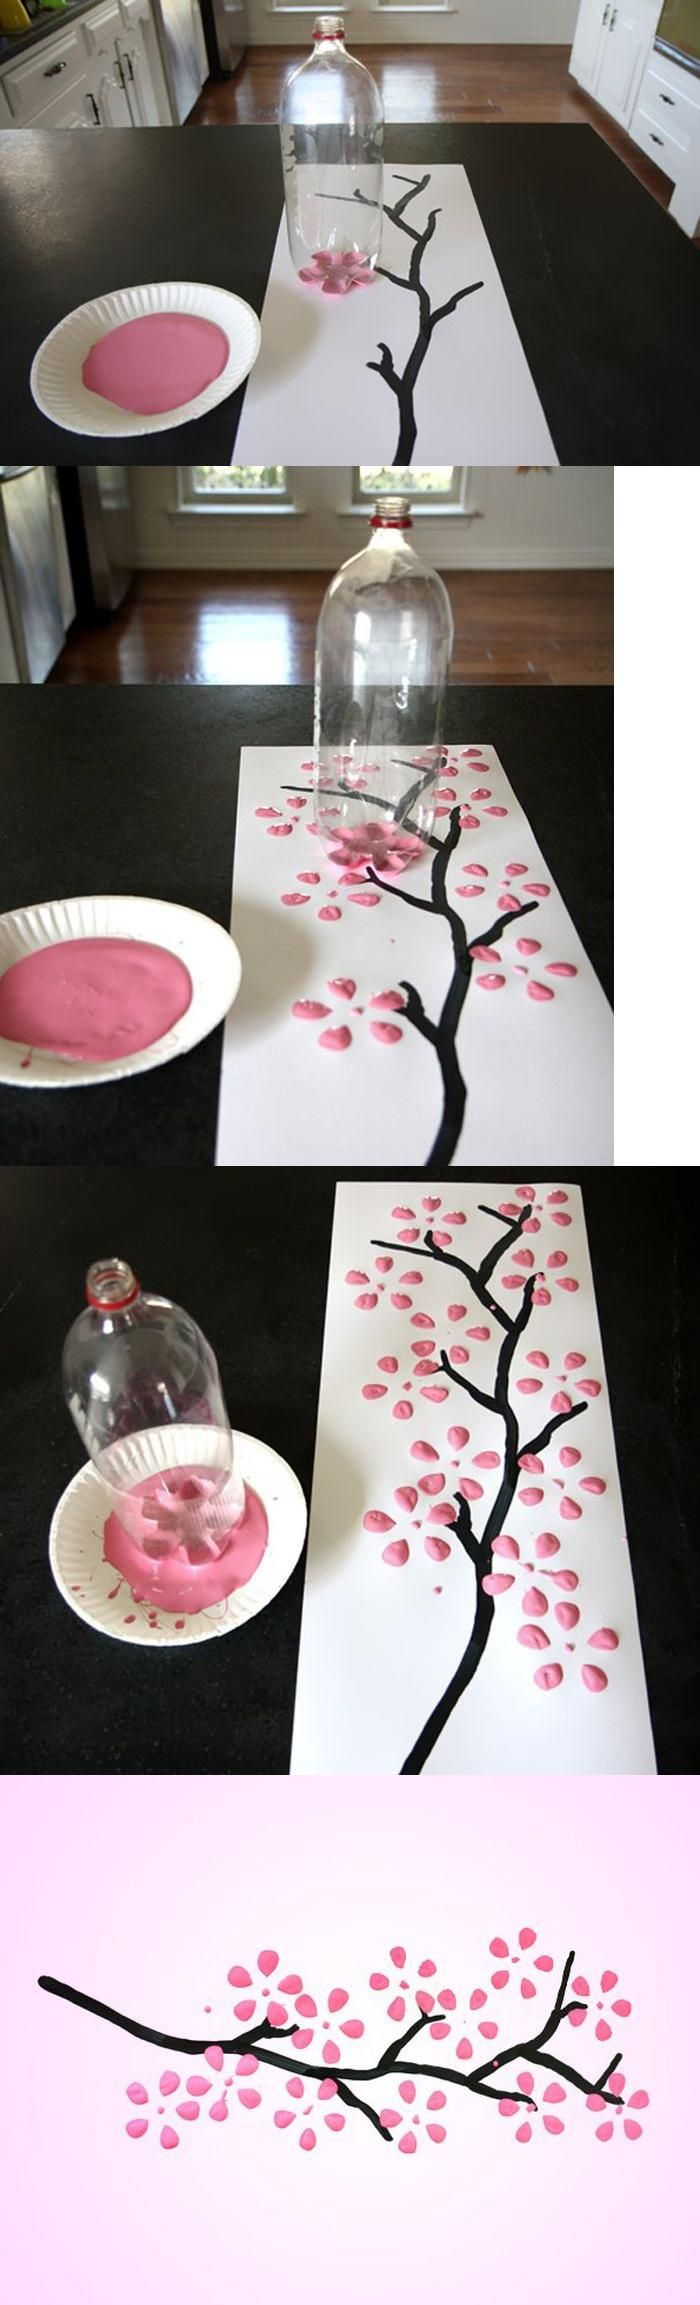 diy painting wall crafts http://www.womans-heaven.com/diy-custom-wall-painting/